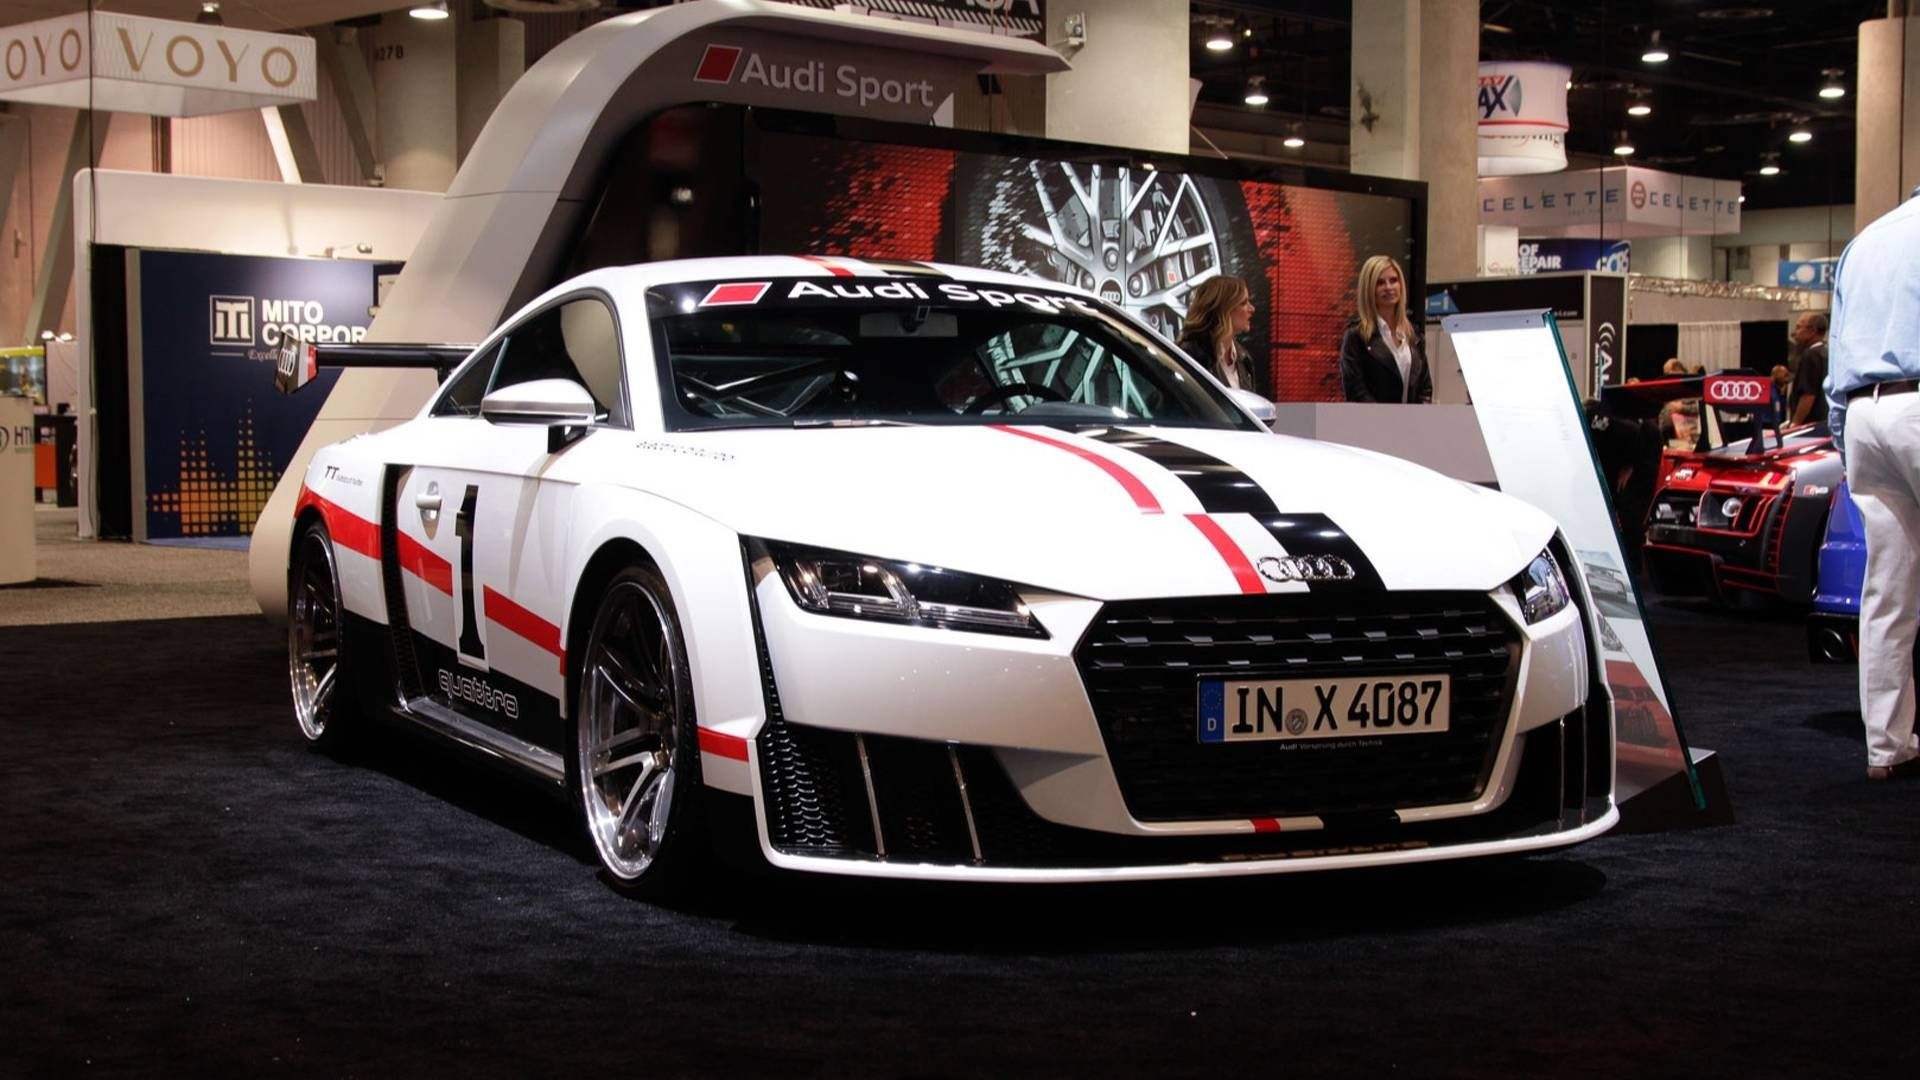 Audi Tt Clubsport Concept Races Into Sema With 600 Hp Dreamcars